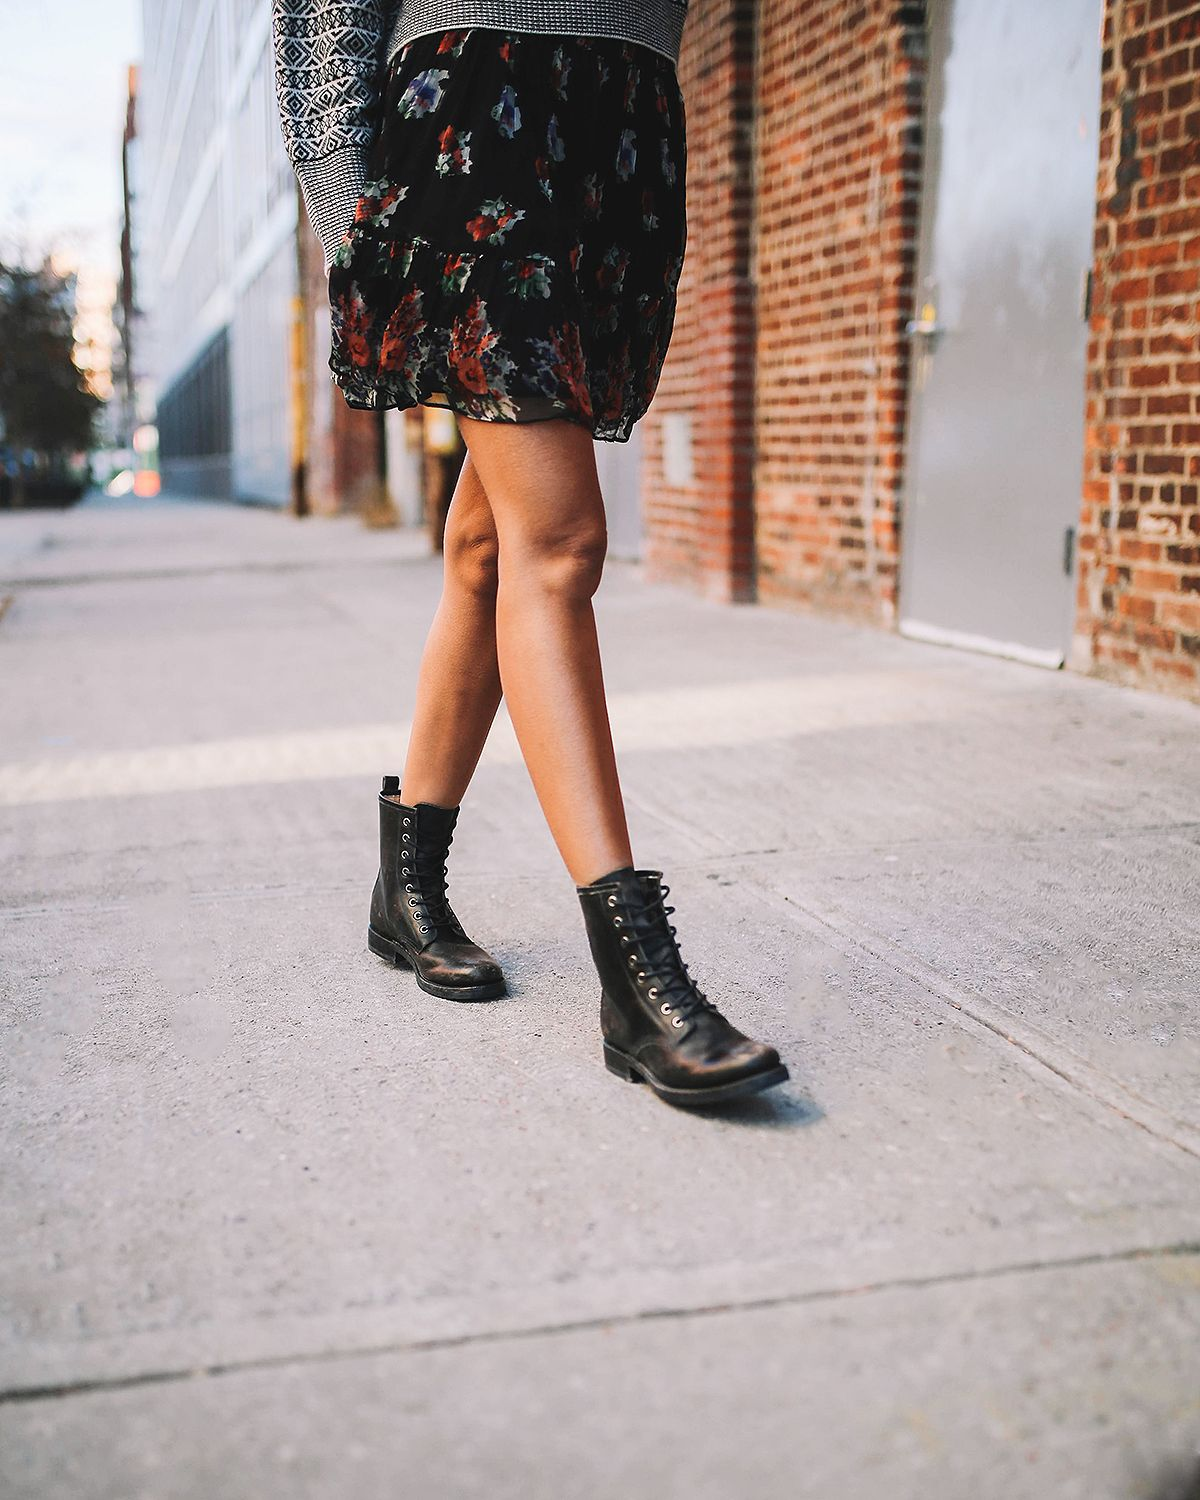 f599982d486 Shop These Frye Combat Boots on Sale at Nordstrom